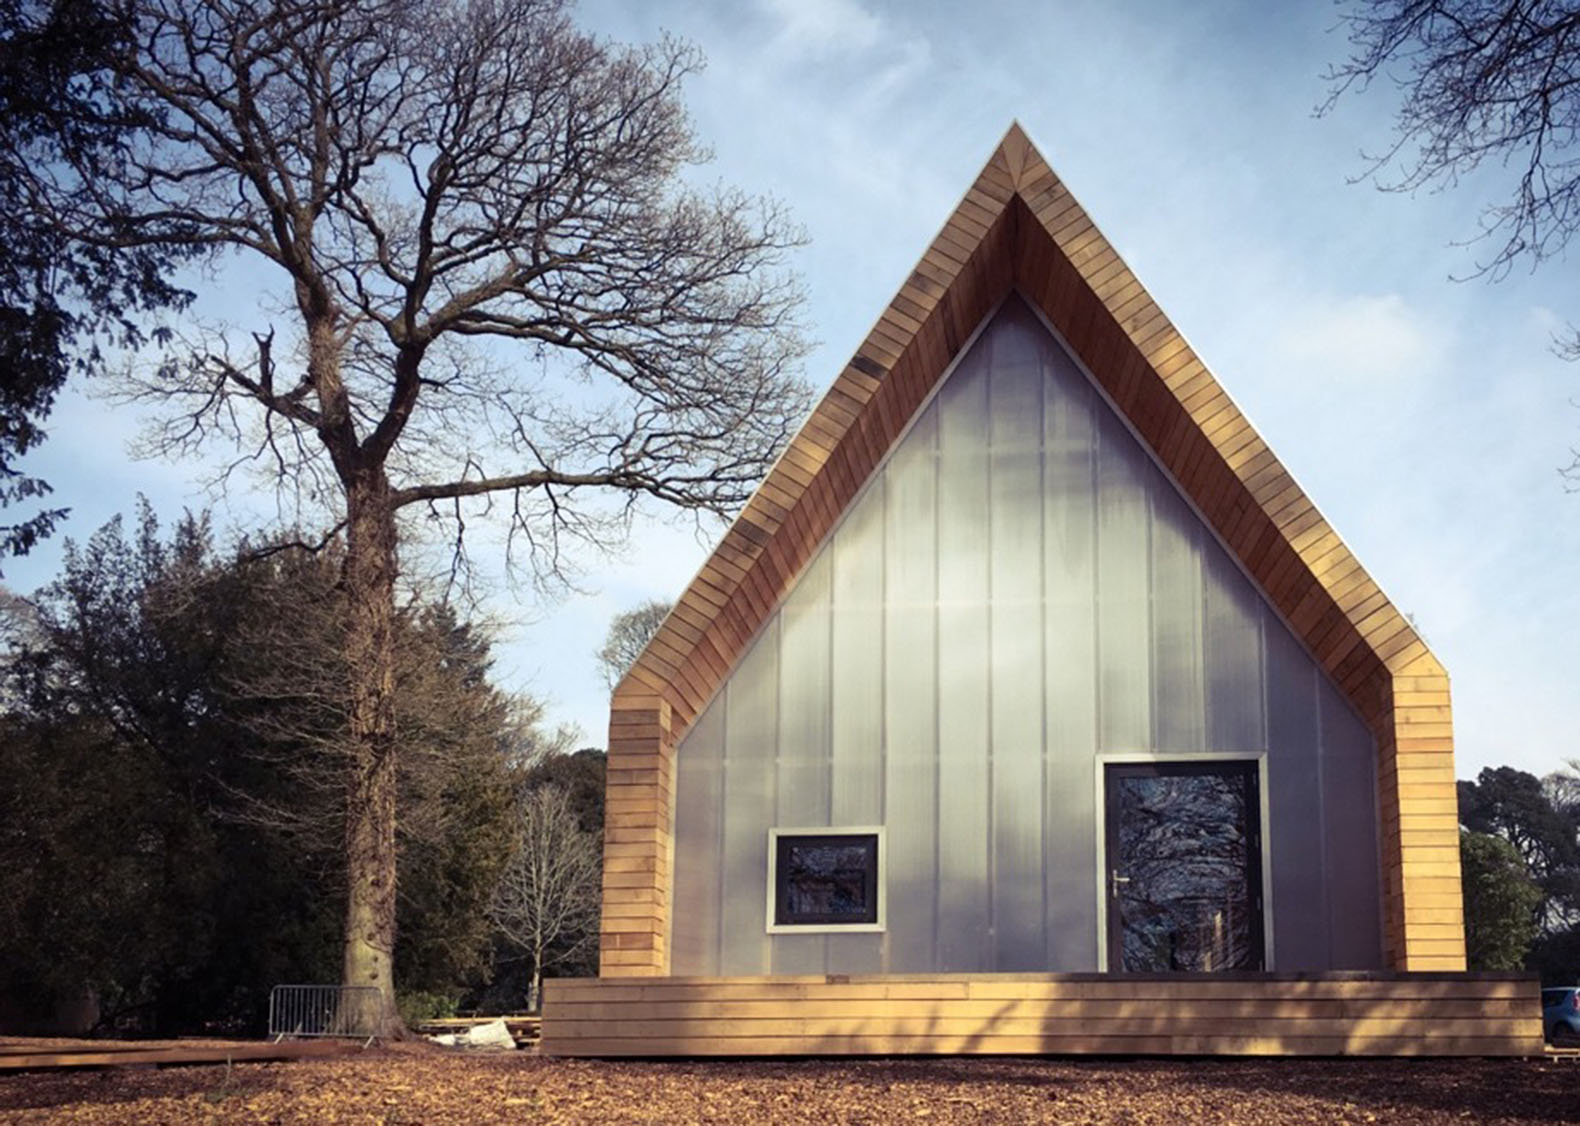 These Two Arboretum Buildings Were Built Using Waste